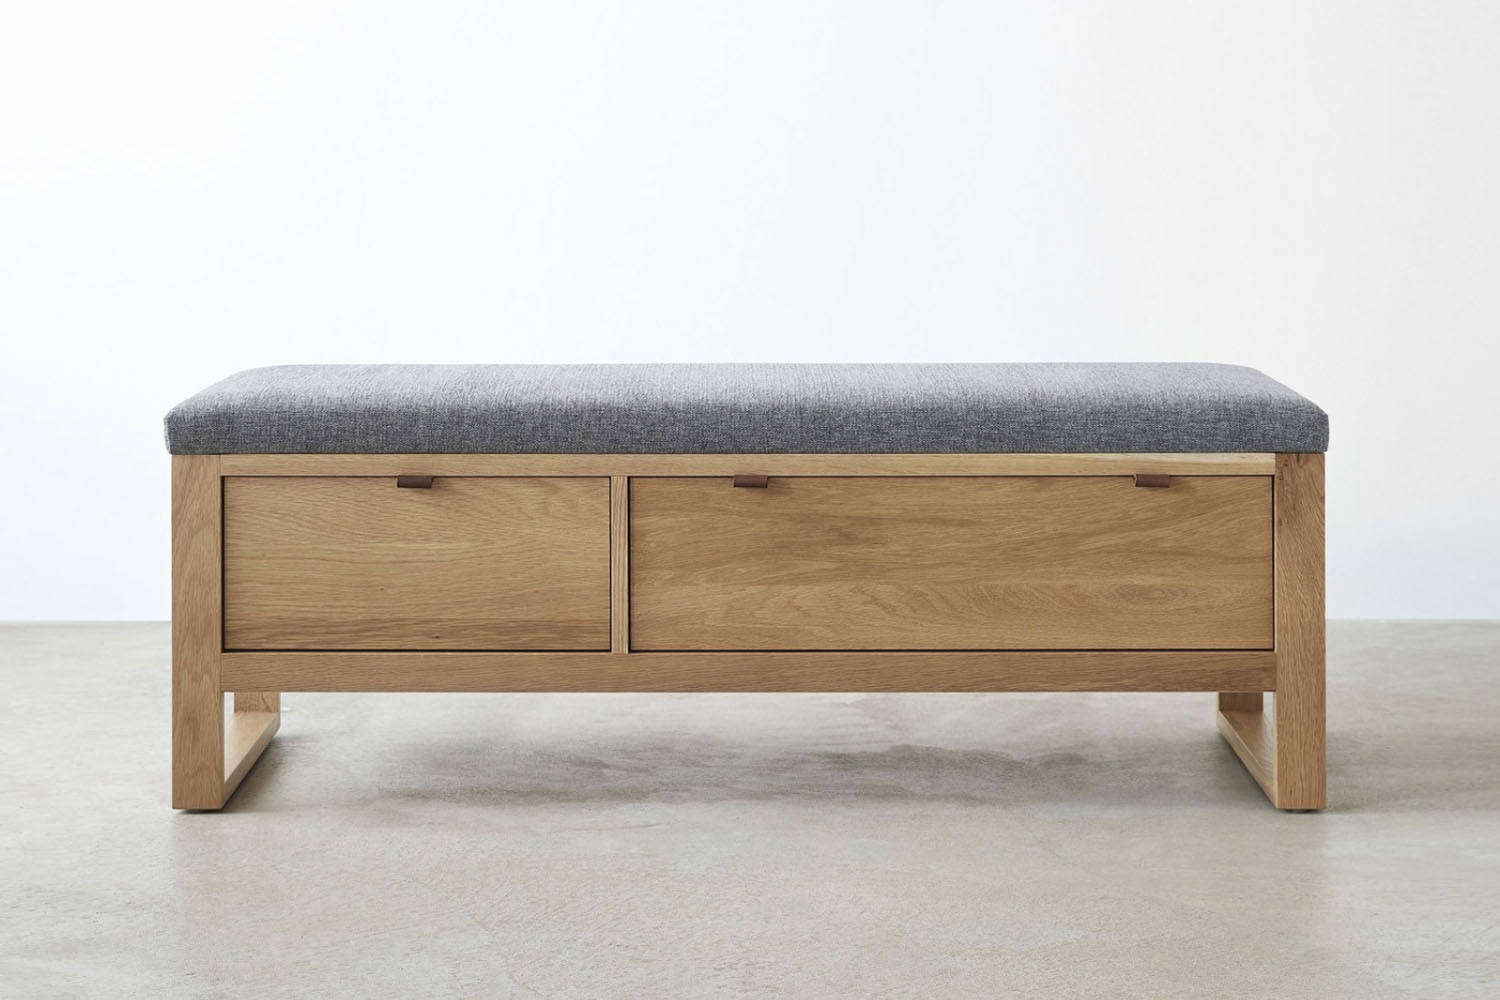 At Unison Home, the Fulton Charcoal Storage Bench is made of solid white oak with an upholstered seat; $loading=